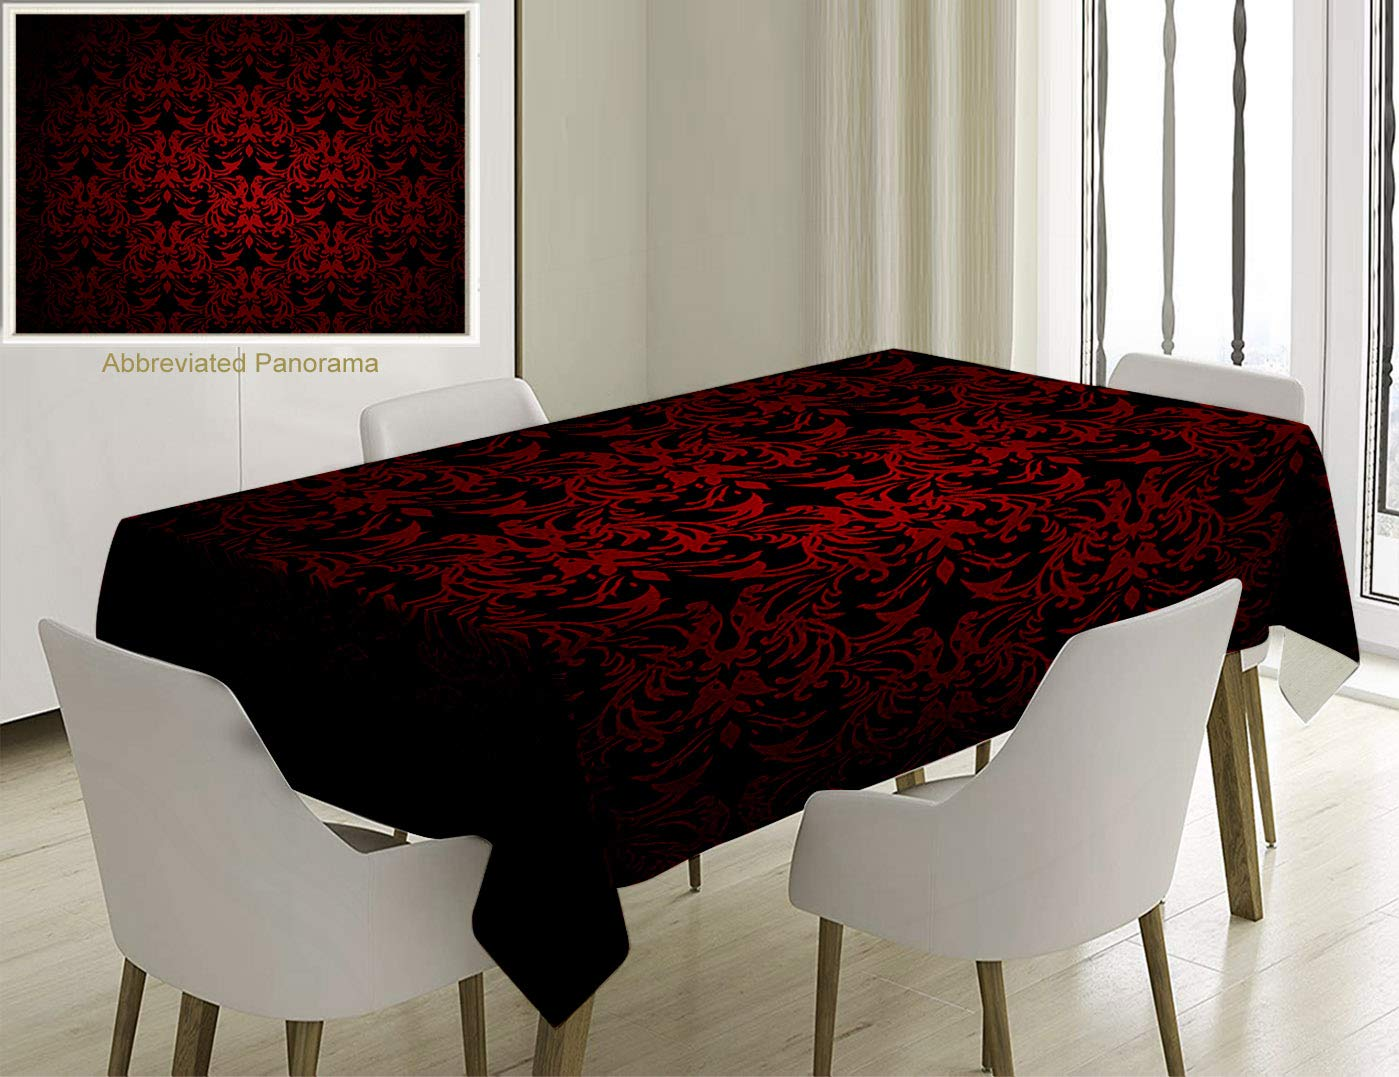 Unique Custom Cotton And Linen Blend Tablecloth Red And Black Victorian Antique Old European Design Floral Swirls And Leaves Ombre Image BurgundyTablecovers For Rectangle Tables, 60 x 40 Inches